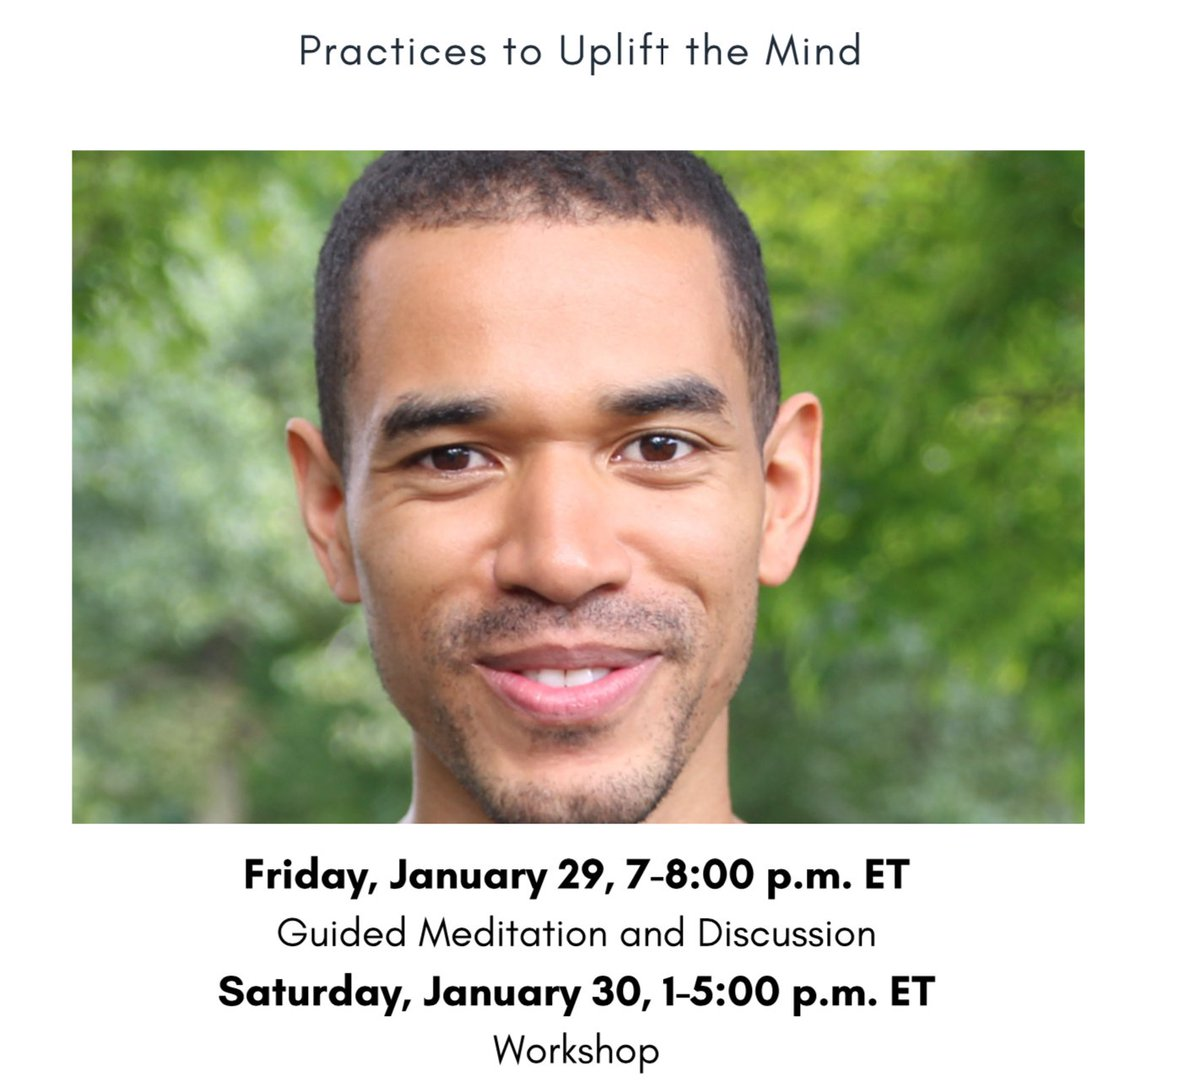 """Join us this weekend! """"Practices to Uplift the Mind"""" with @10percent teacher Matthew Hepburn on Friday, 1/29 and Saturday, 1/30. Free and open to all!  #mindfulness #meditation"""